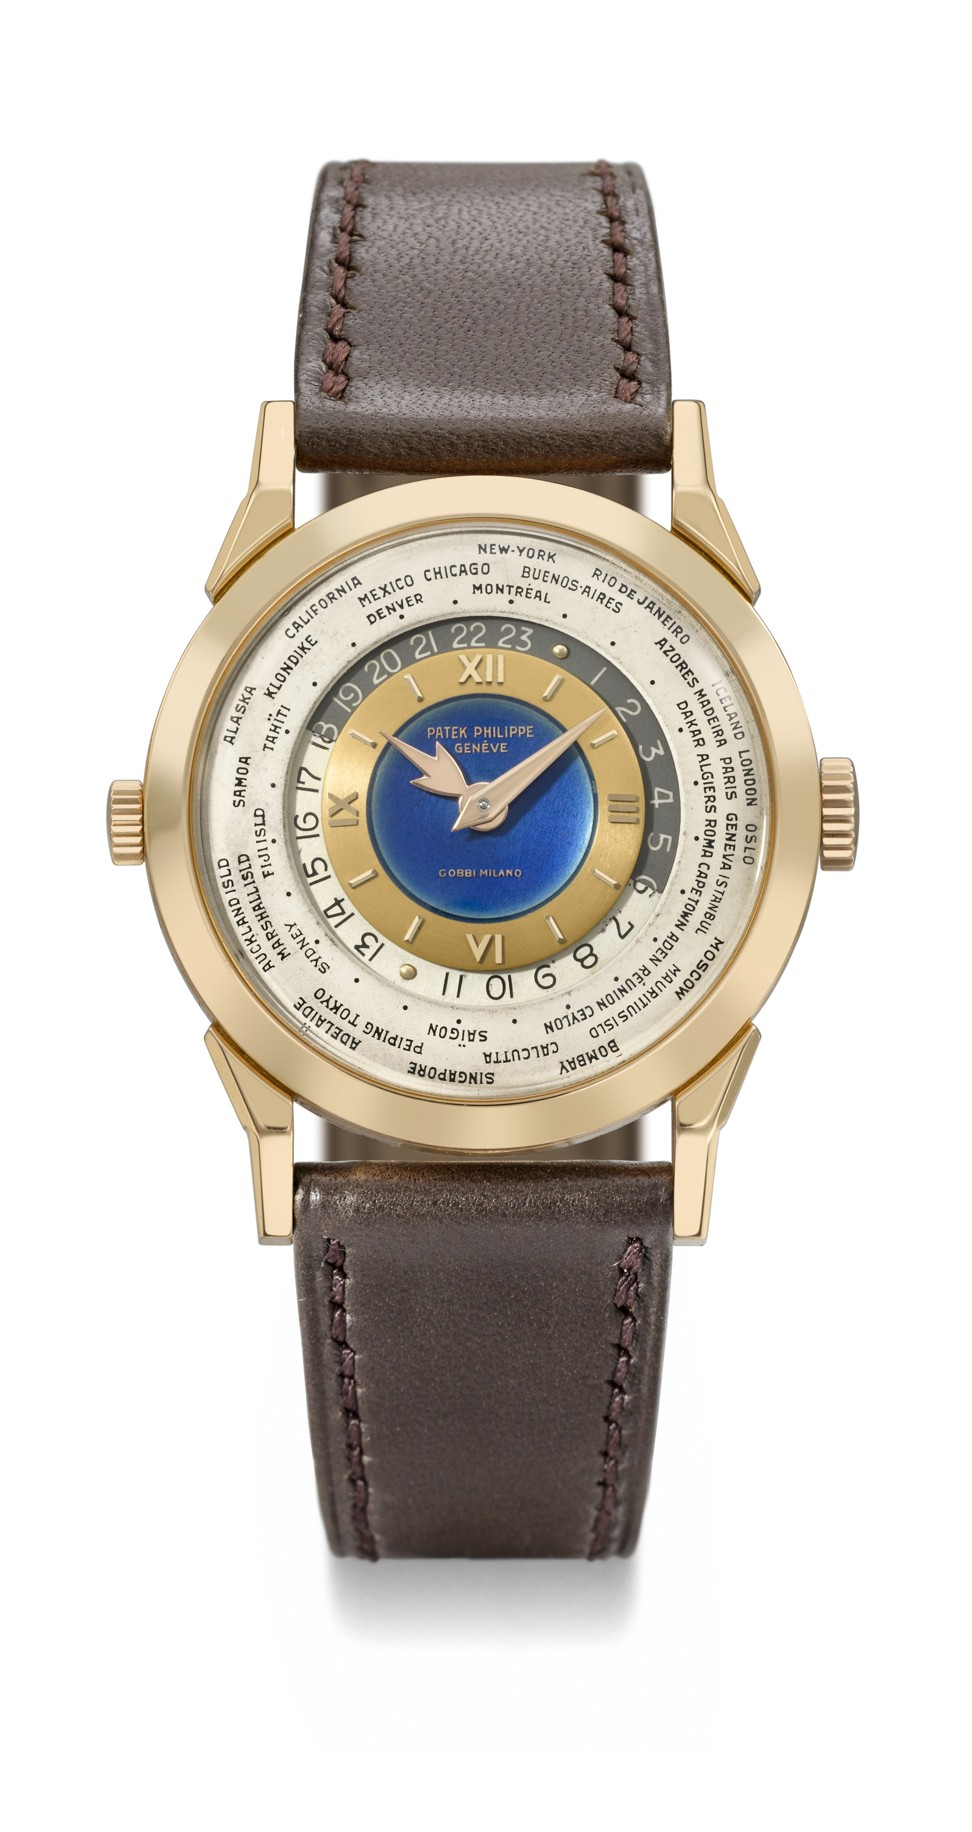 Which luxury watch brand – Patek Philippe, Audemars Piguet or Vacheron Constantin – sold the most expensive timepiece ever auctioned in Asia?